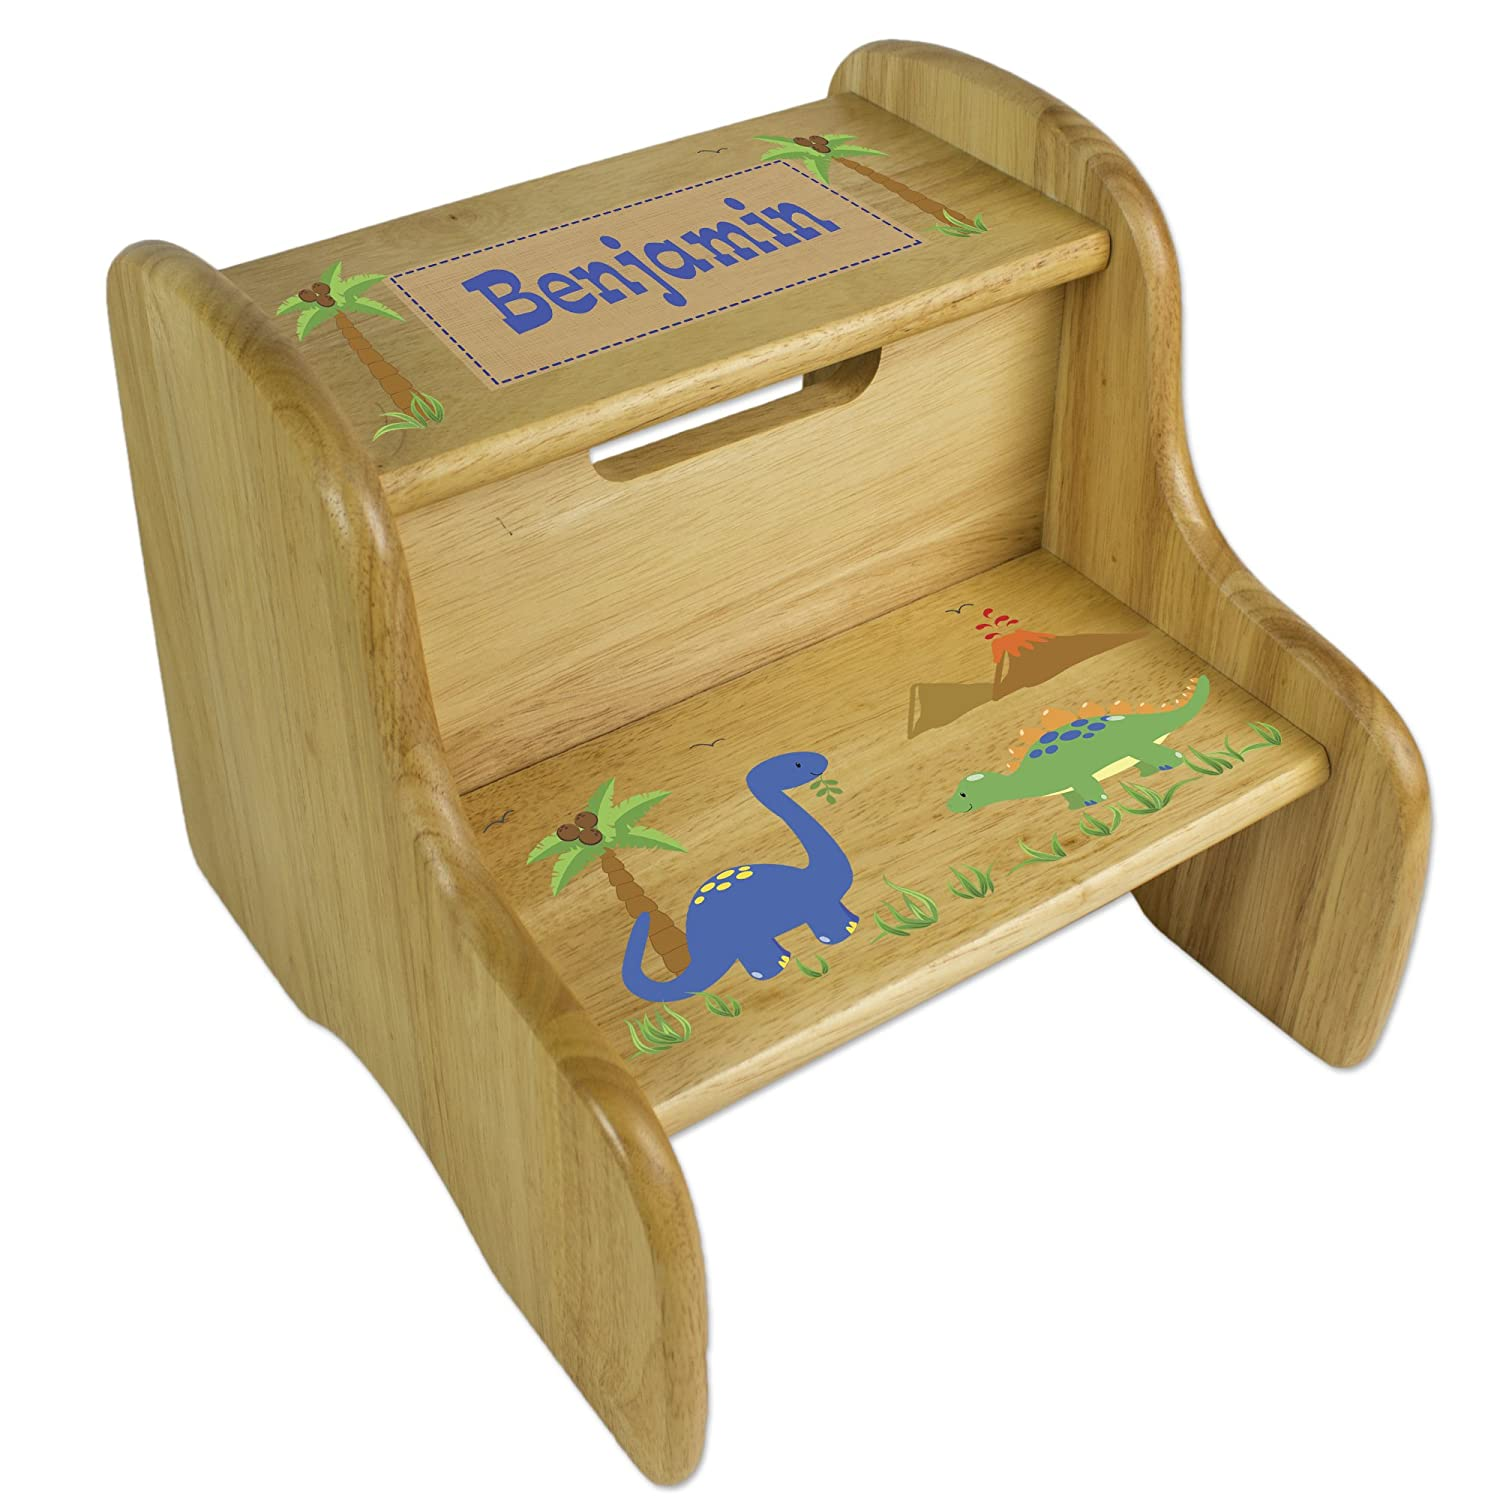 Personalized Wooden Dinosaur Step Stool MyBambino FIXE-NAT-217-PT